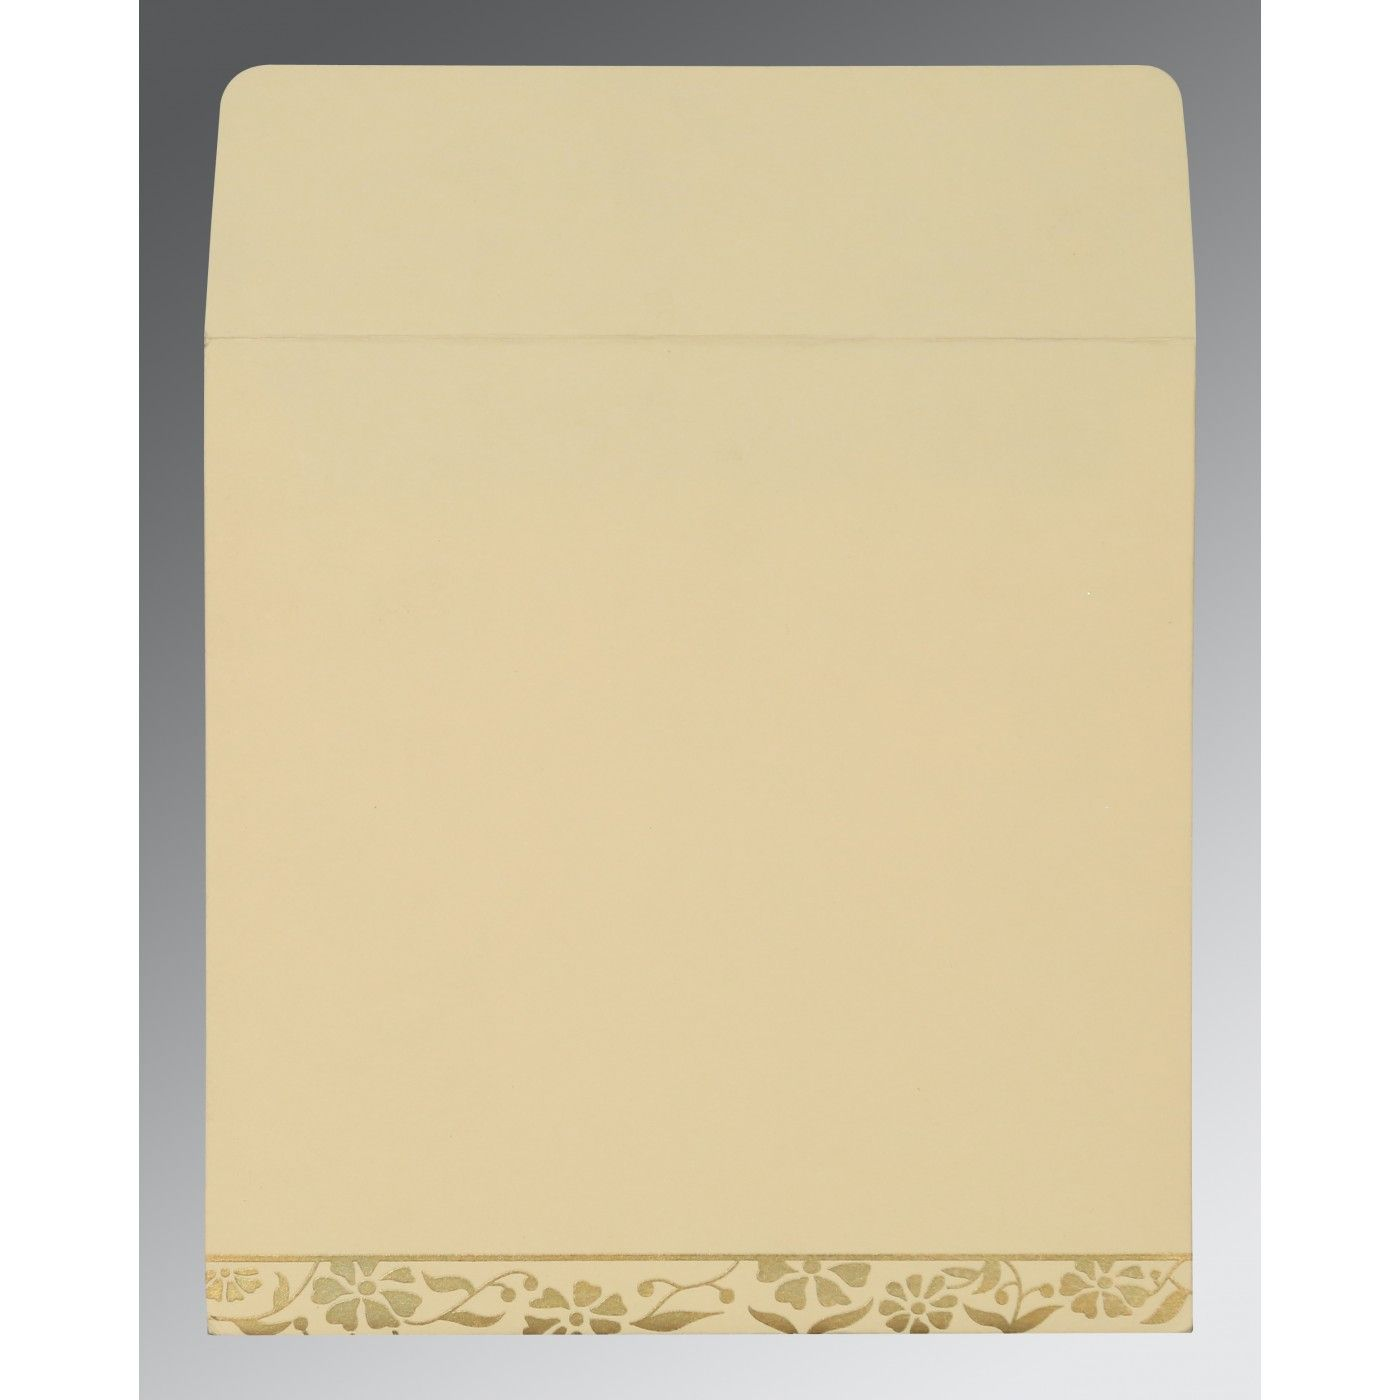 OFF-WHITE MATTE FLORAL THEMED - SCREEN PRINTED WEDDING CARD : CS-8222I - IndianWeddingCards